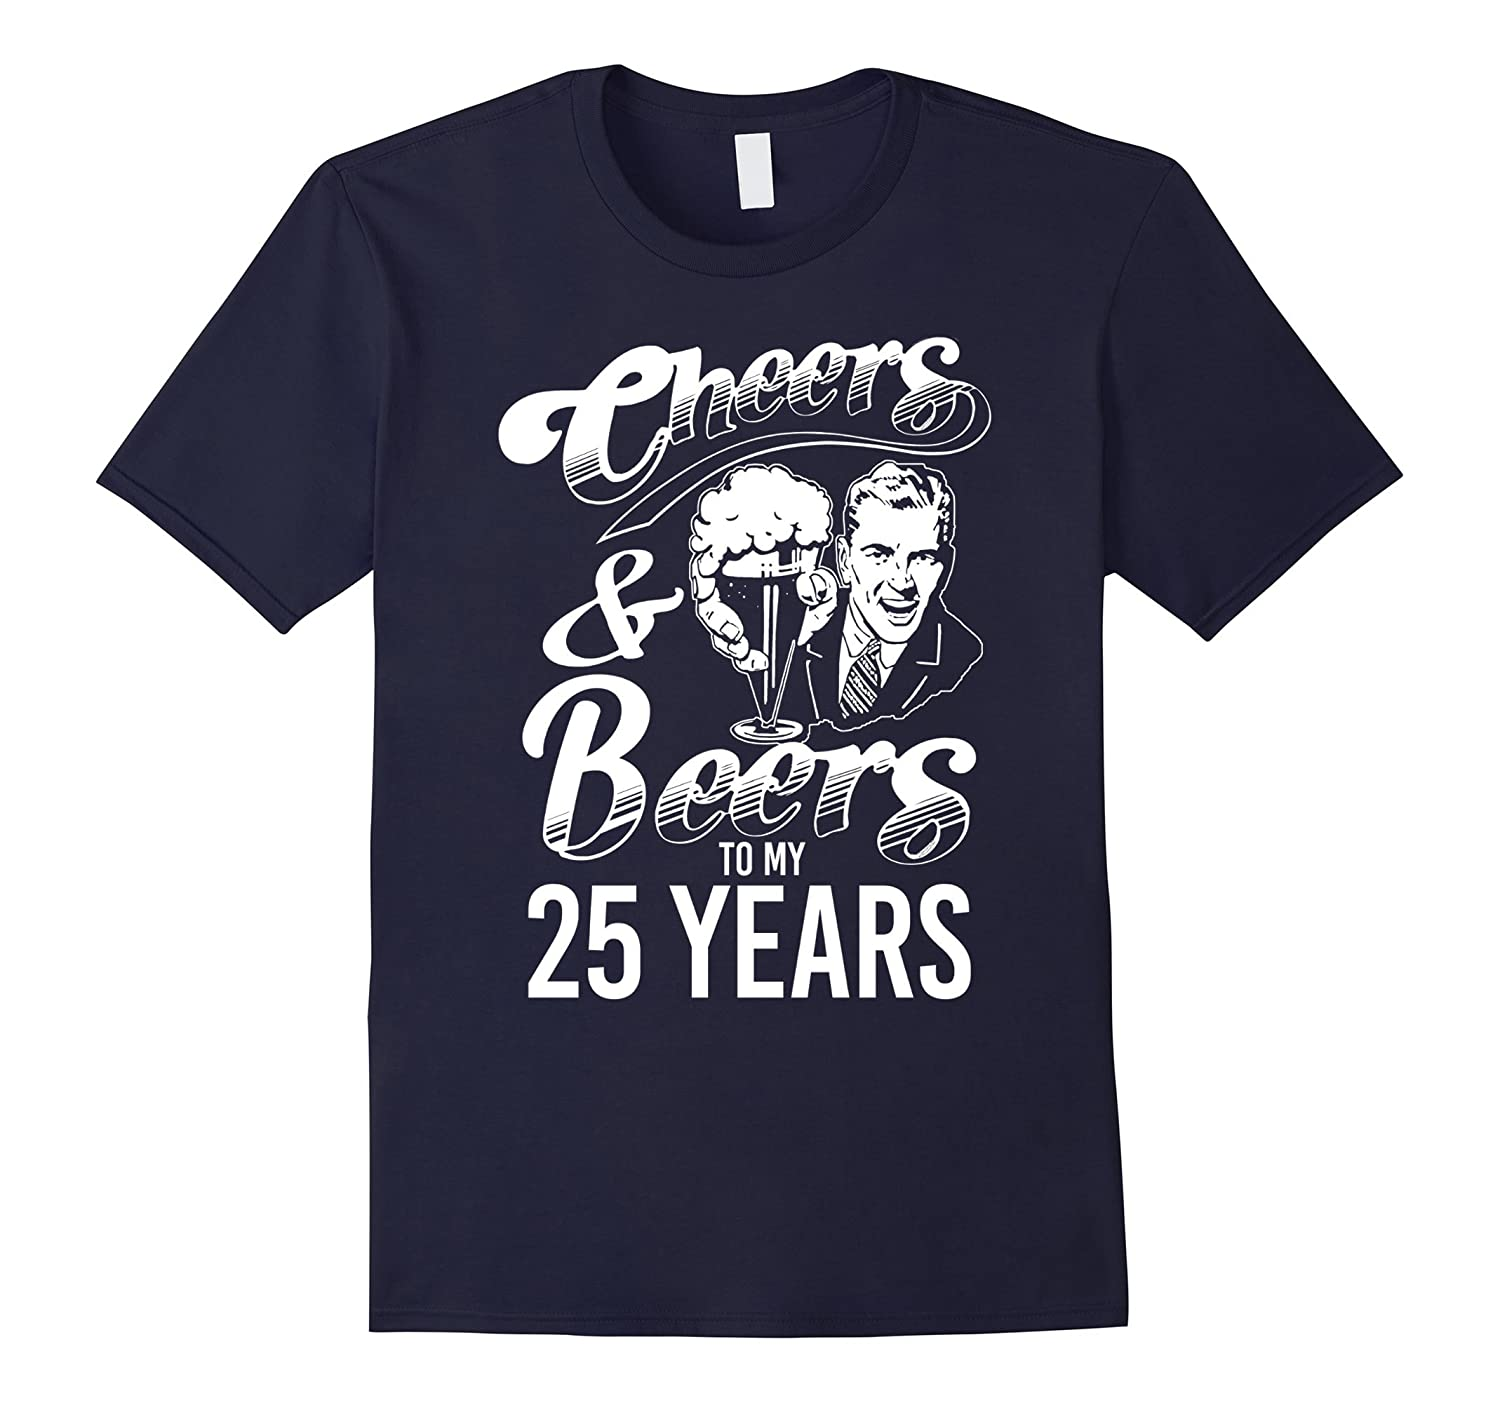 Cheers and Beers To My 25 Years - 25th Birthday T-shirt-CL